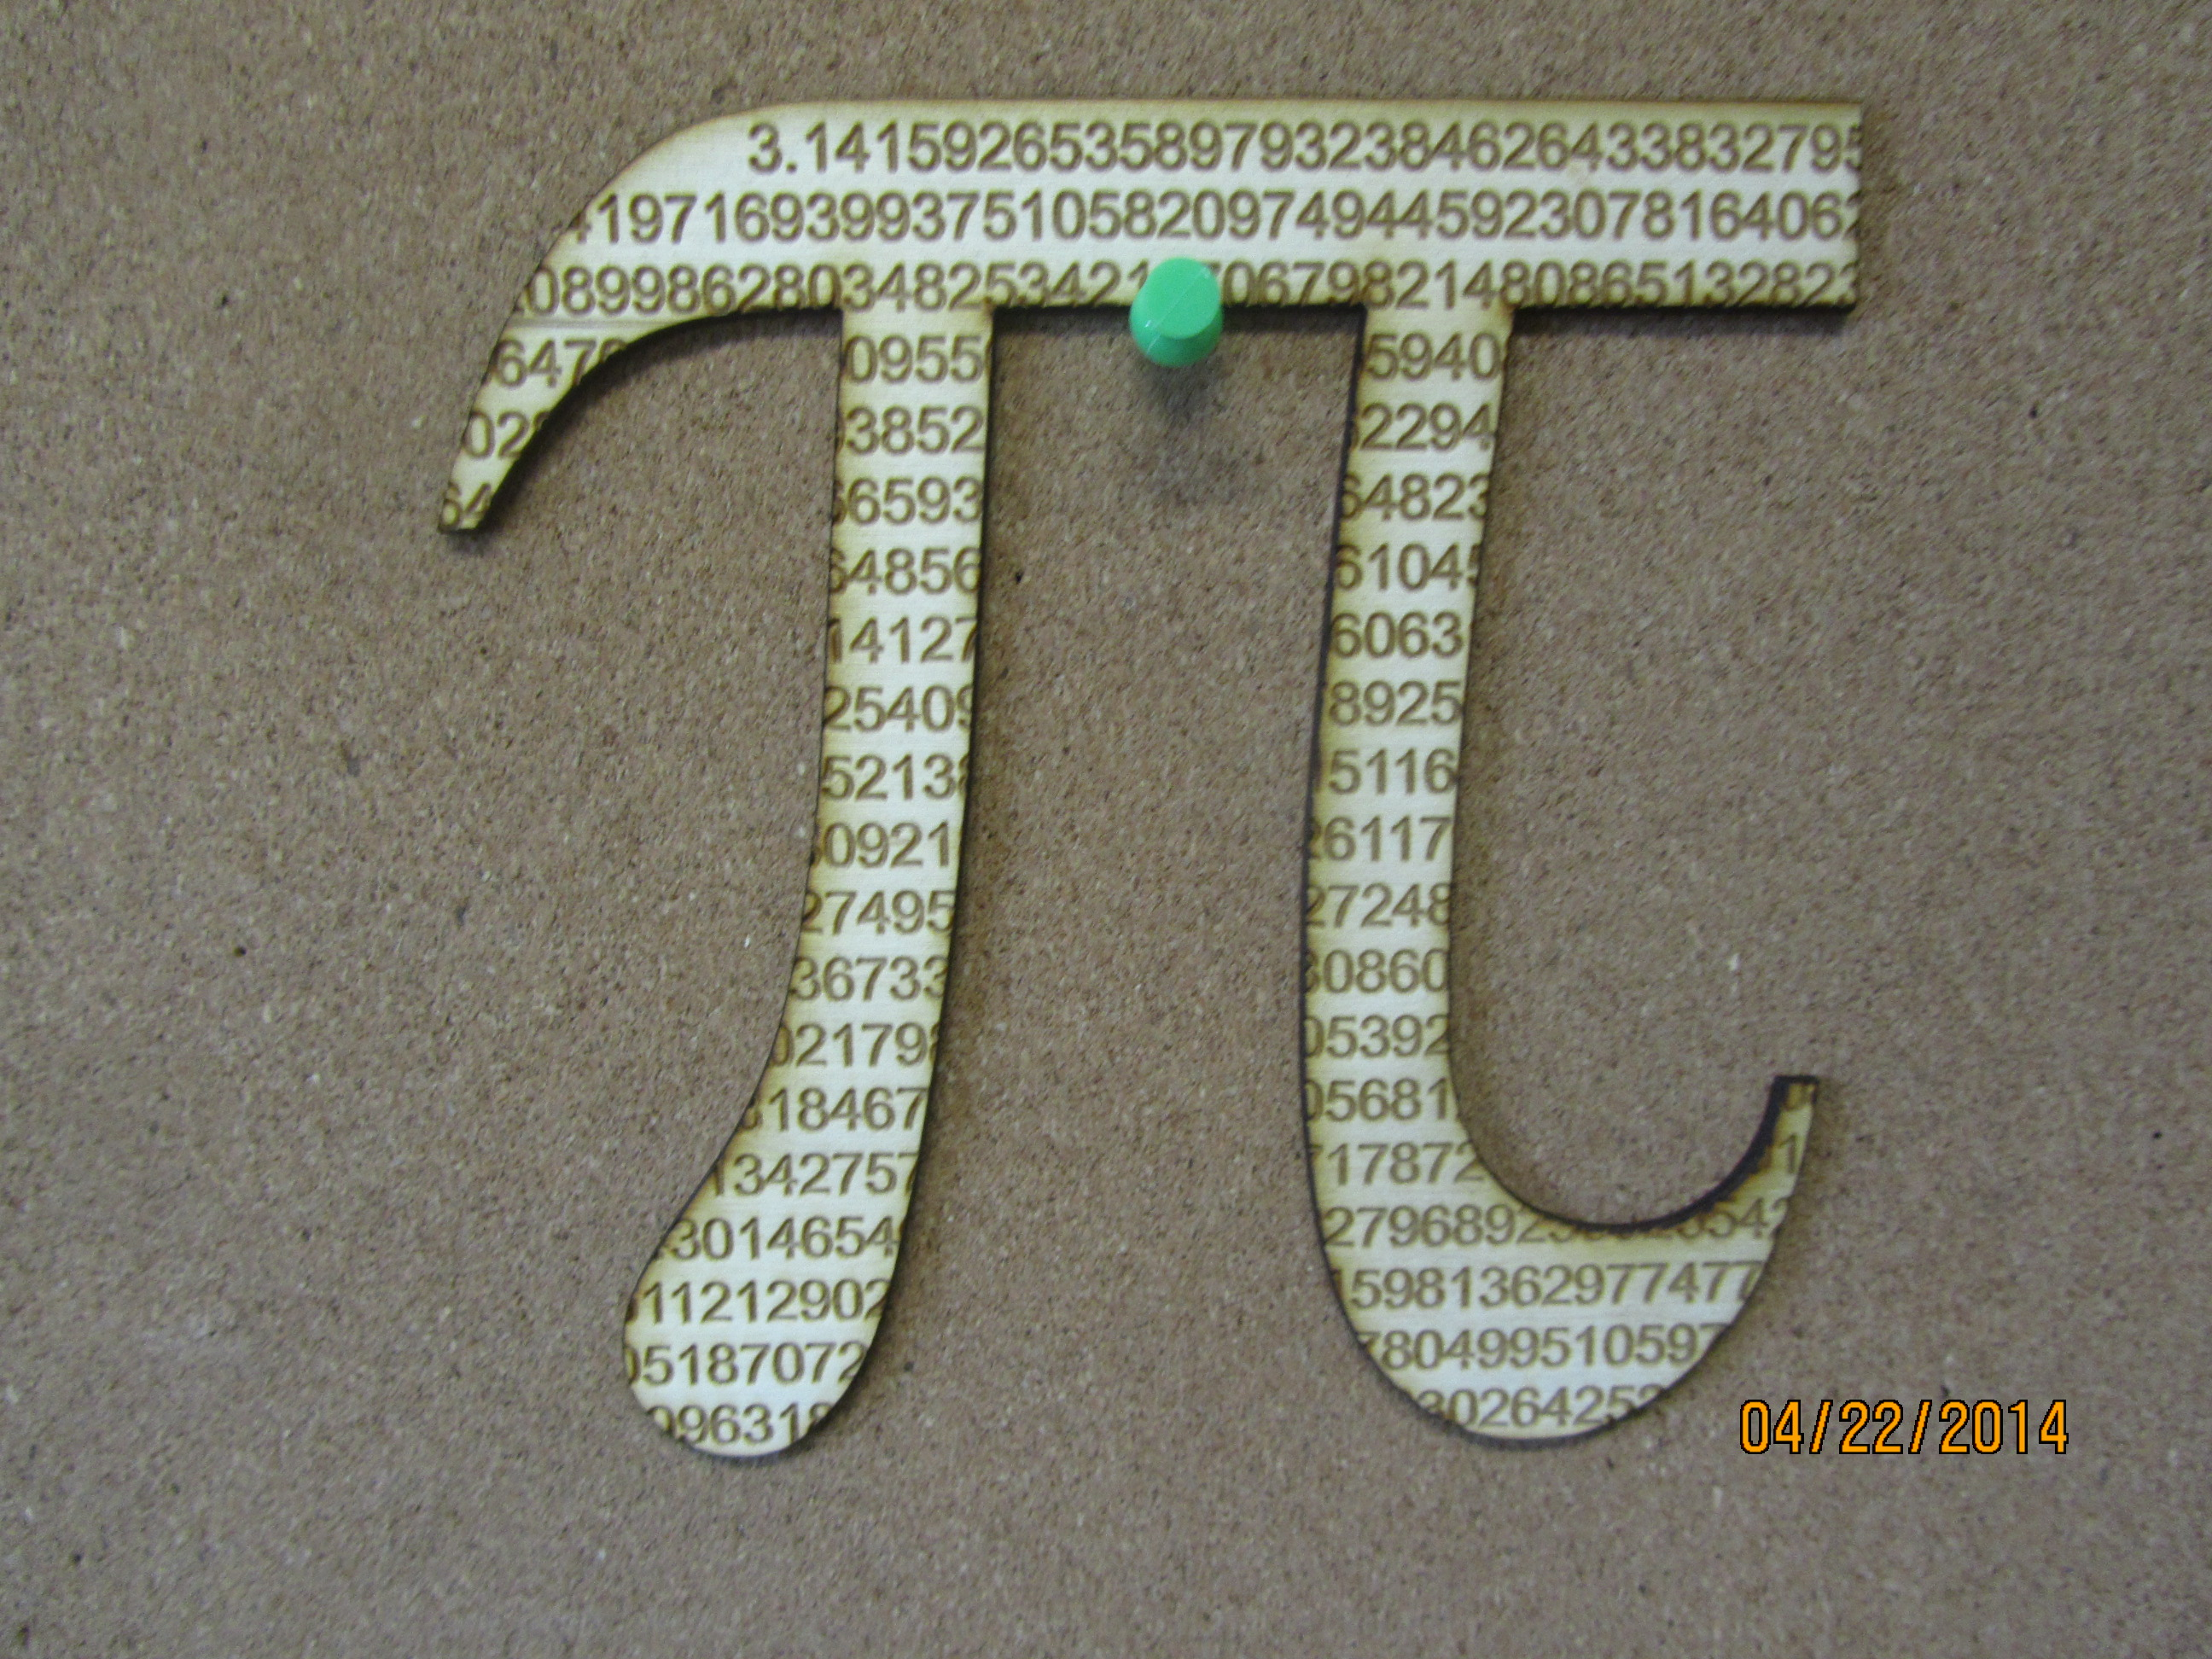 Laser Cut Pi Symbol Cut From 788 Digits Of The Never Ending Number